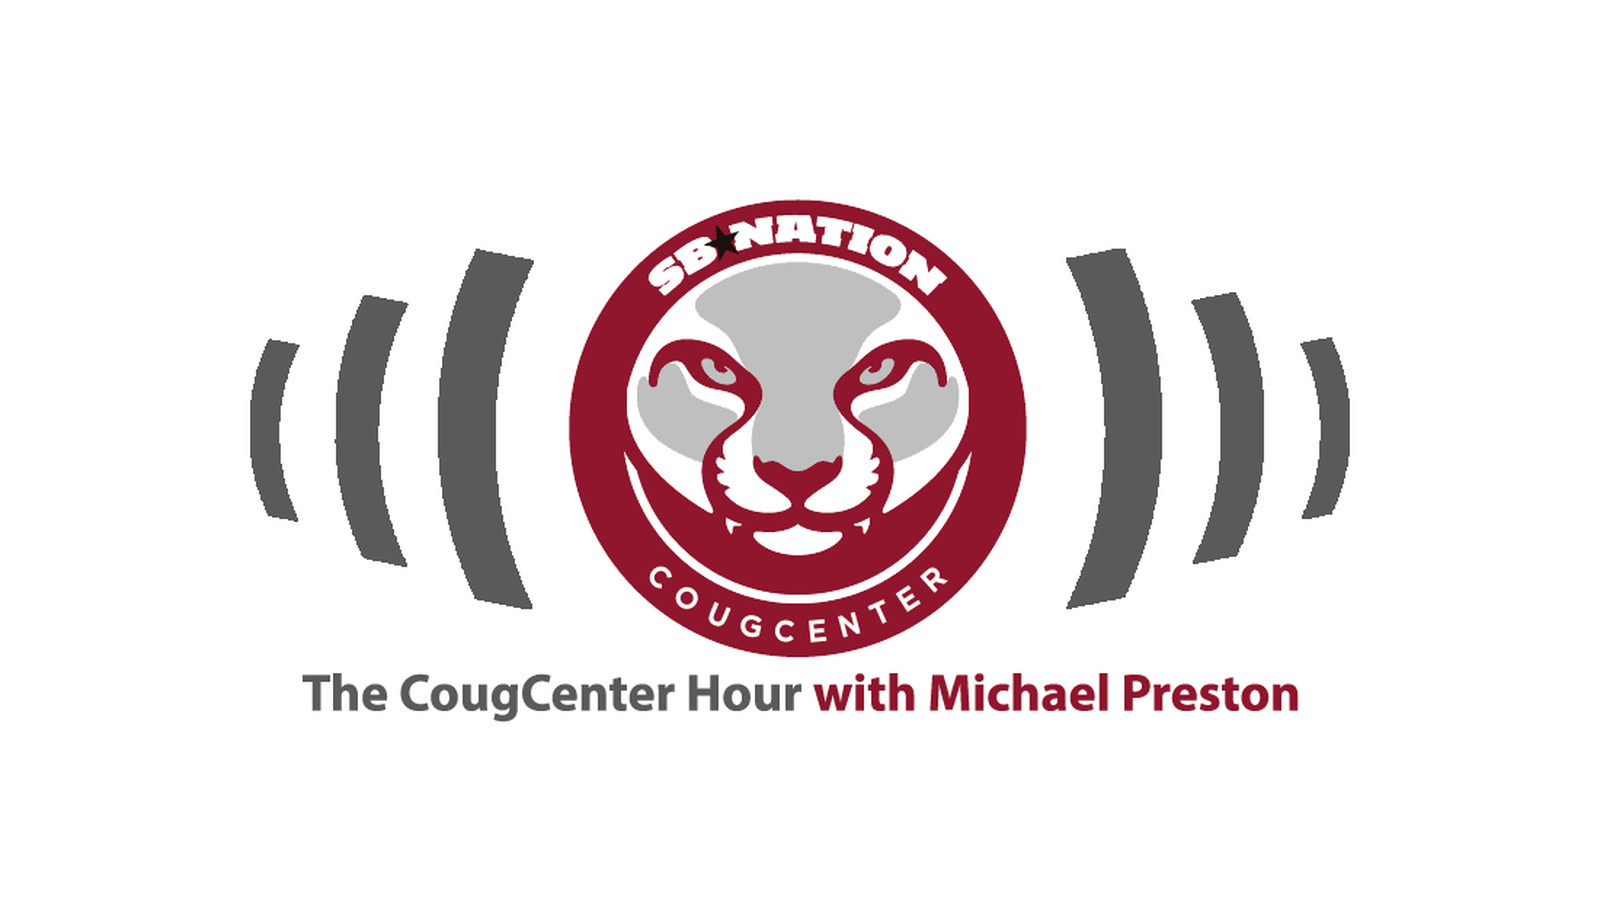 Cougcenter_hour.0